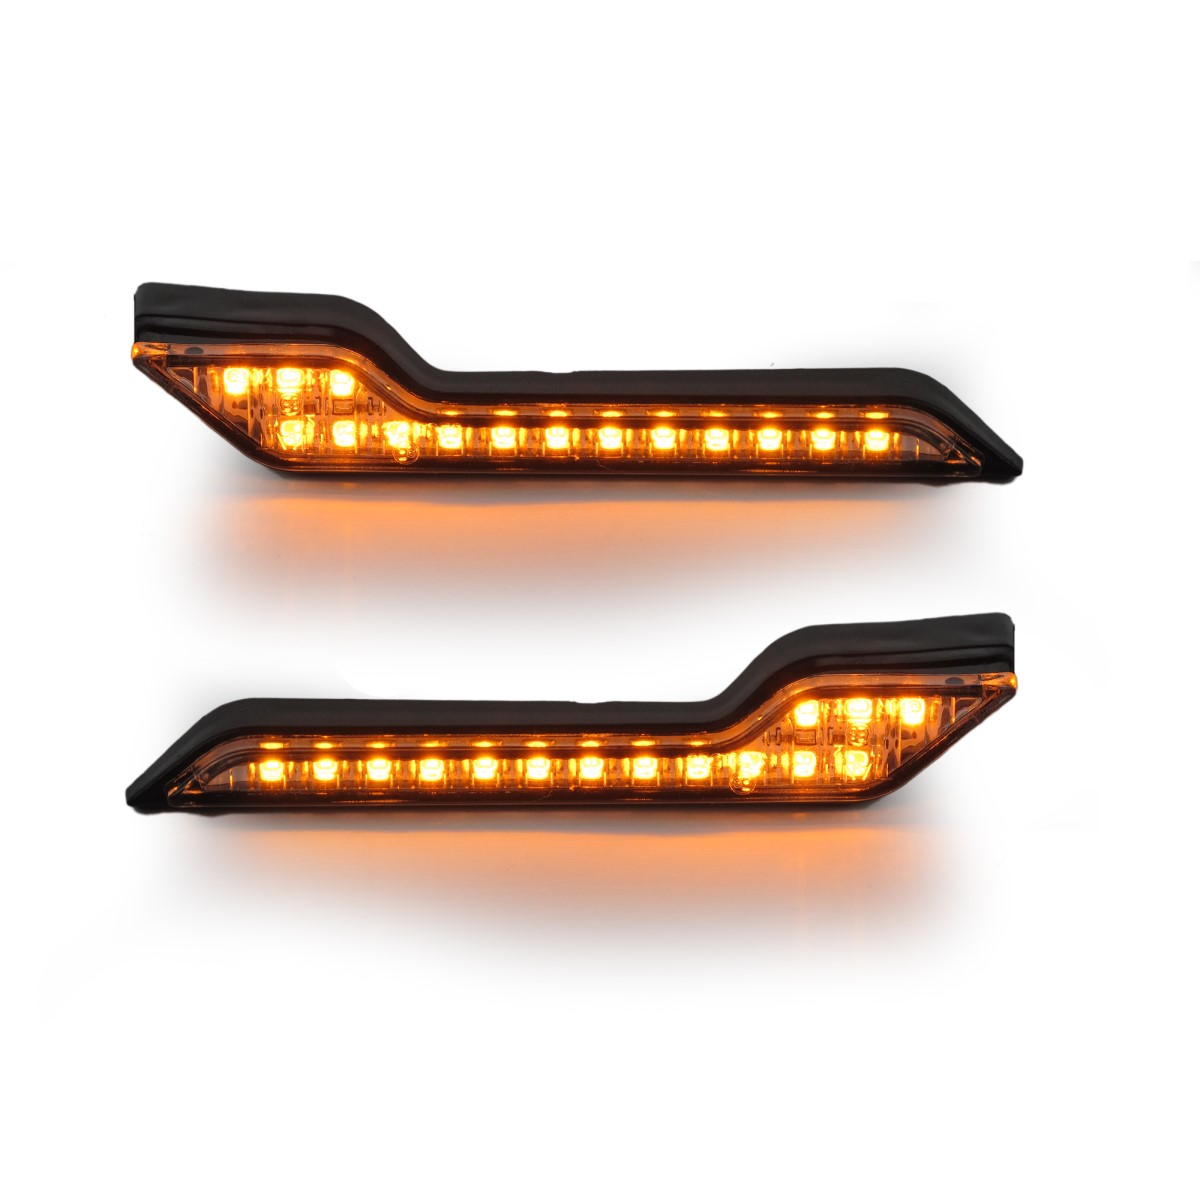 LED Amber Light (Indicator)